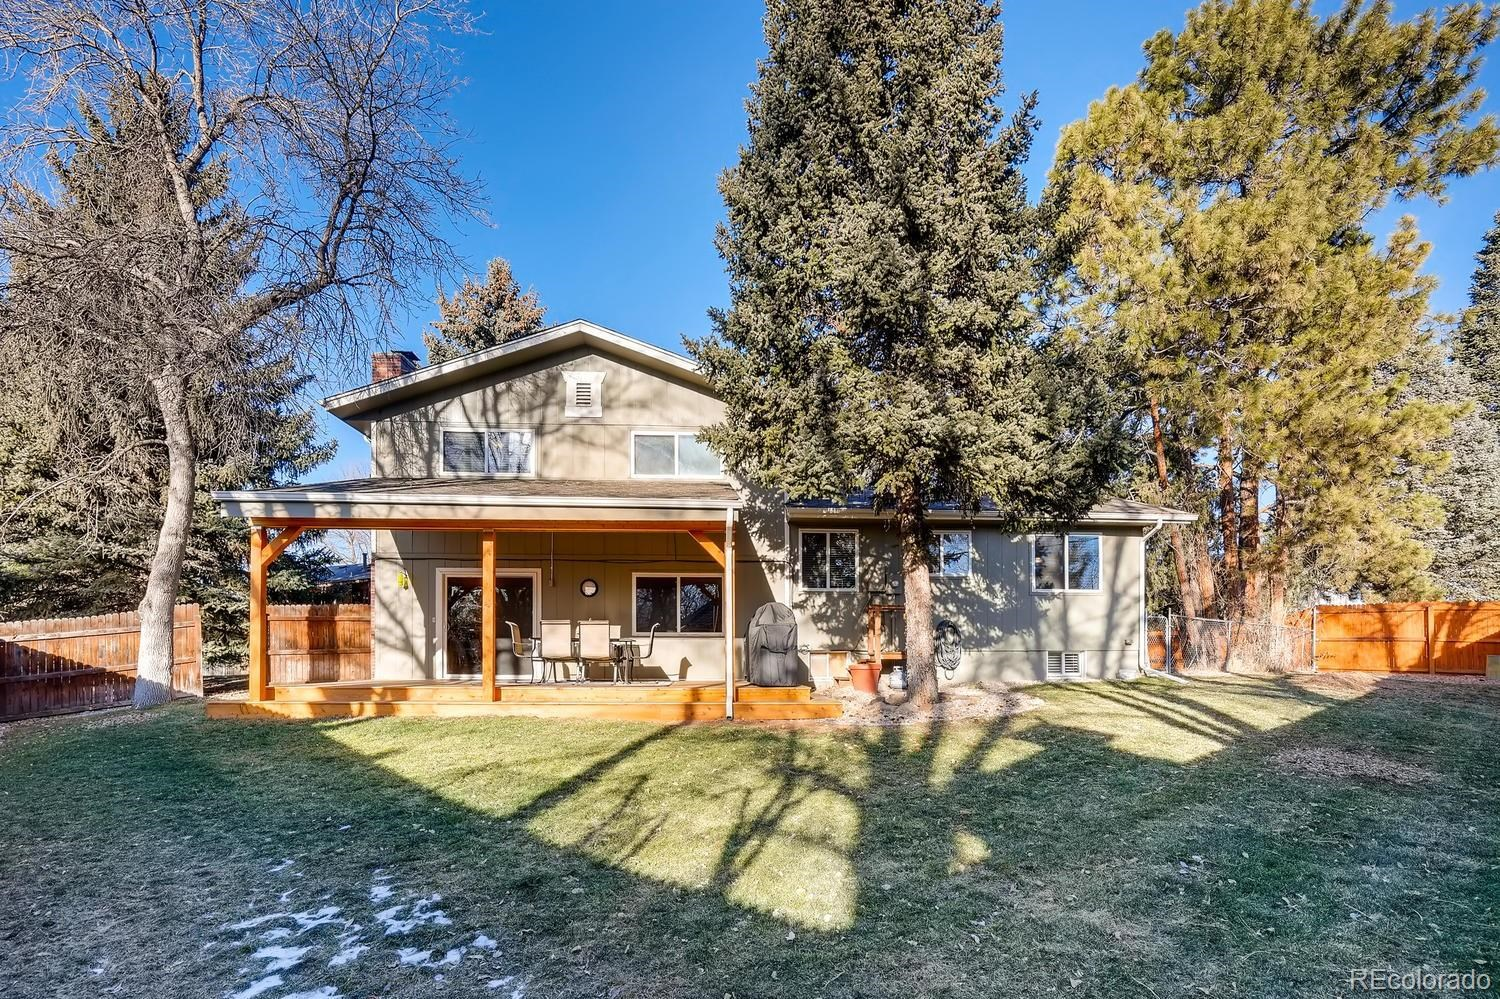 MLS# 8480812 - 27 - 12630 W 67th Place, Arvada, CO 80004